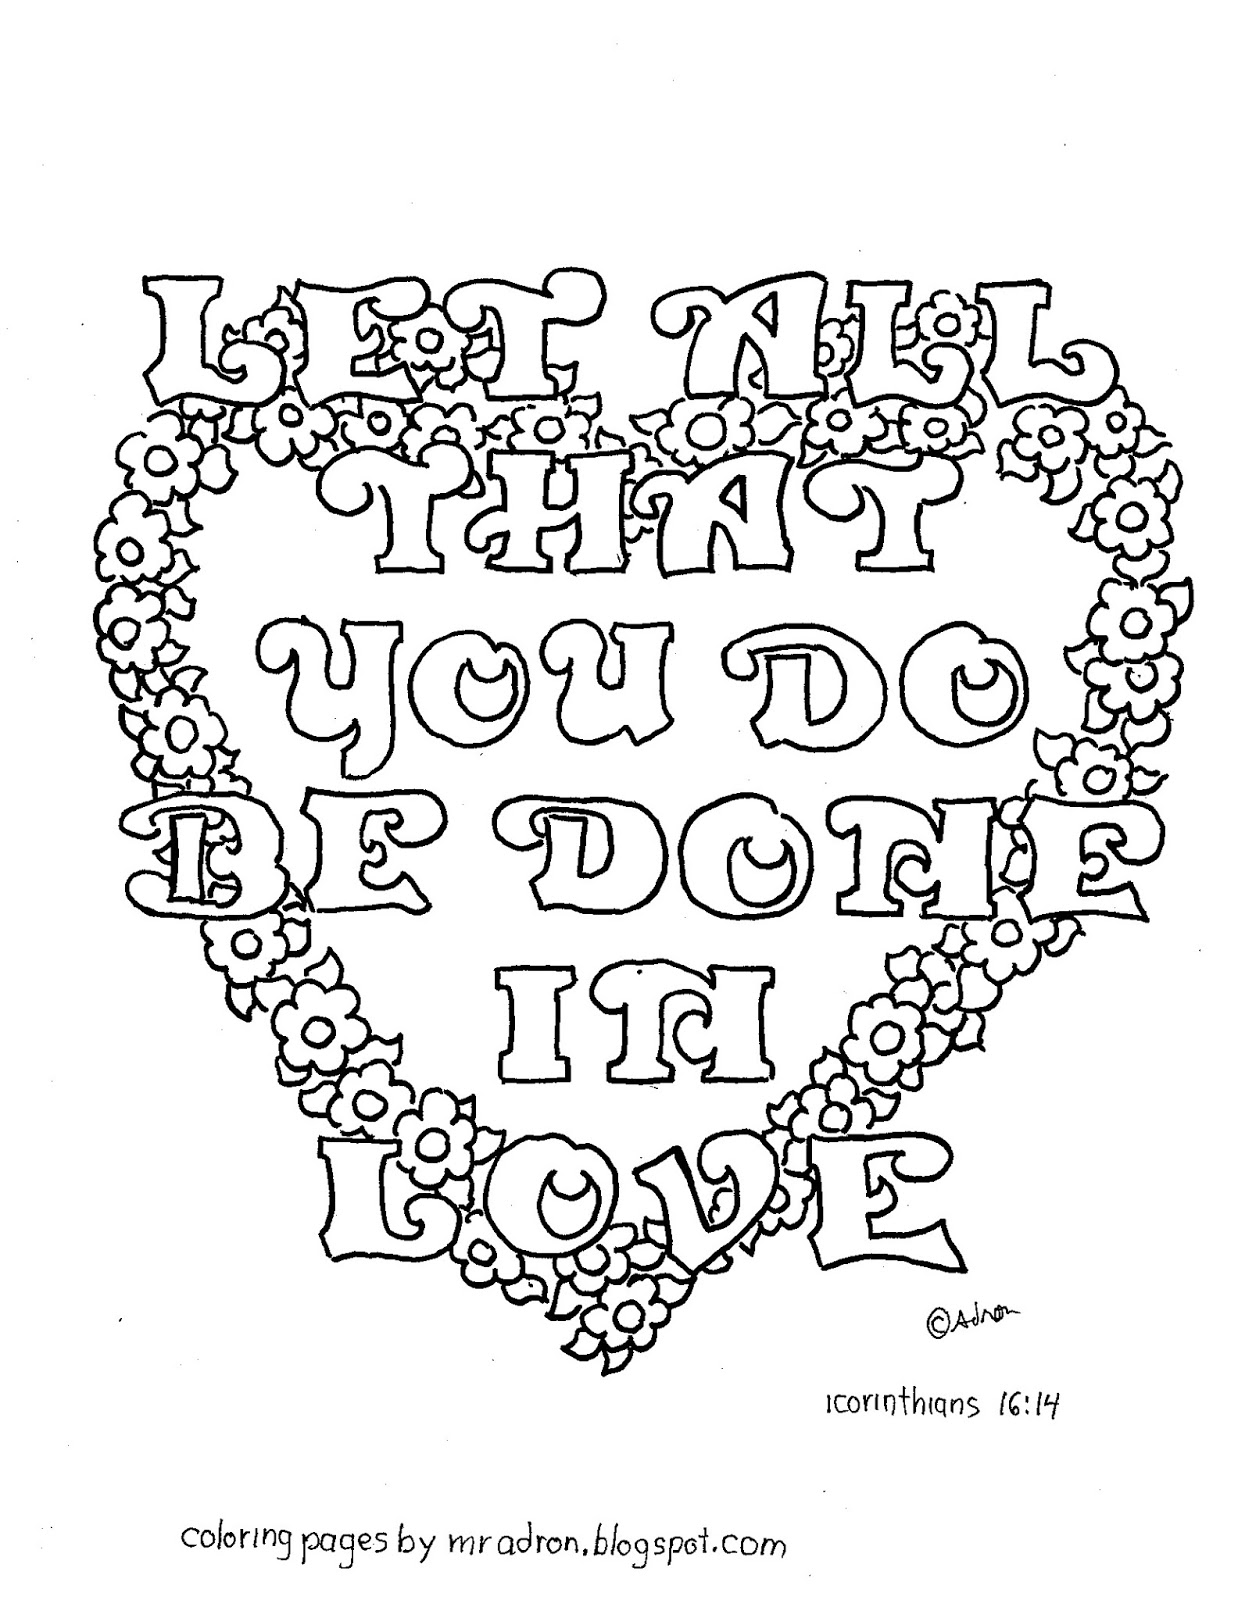 Coloring Pages For Kids By Mr Adron Do Everything In Love 1 Corinthians 16 14 Free Coloring Page